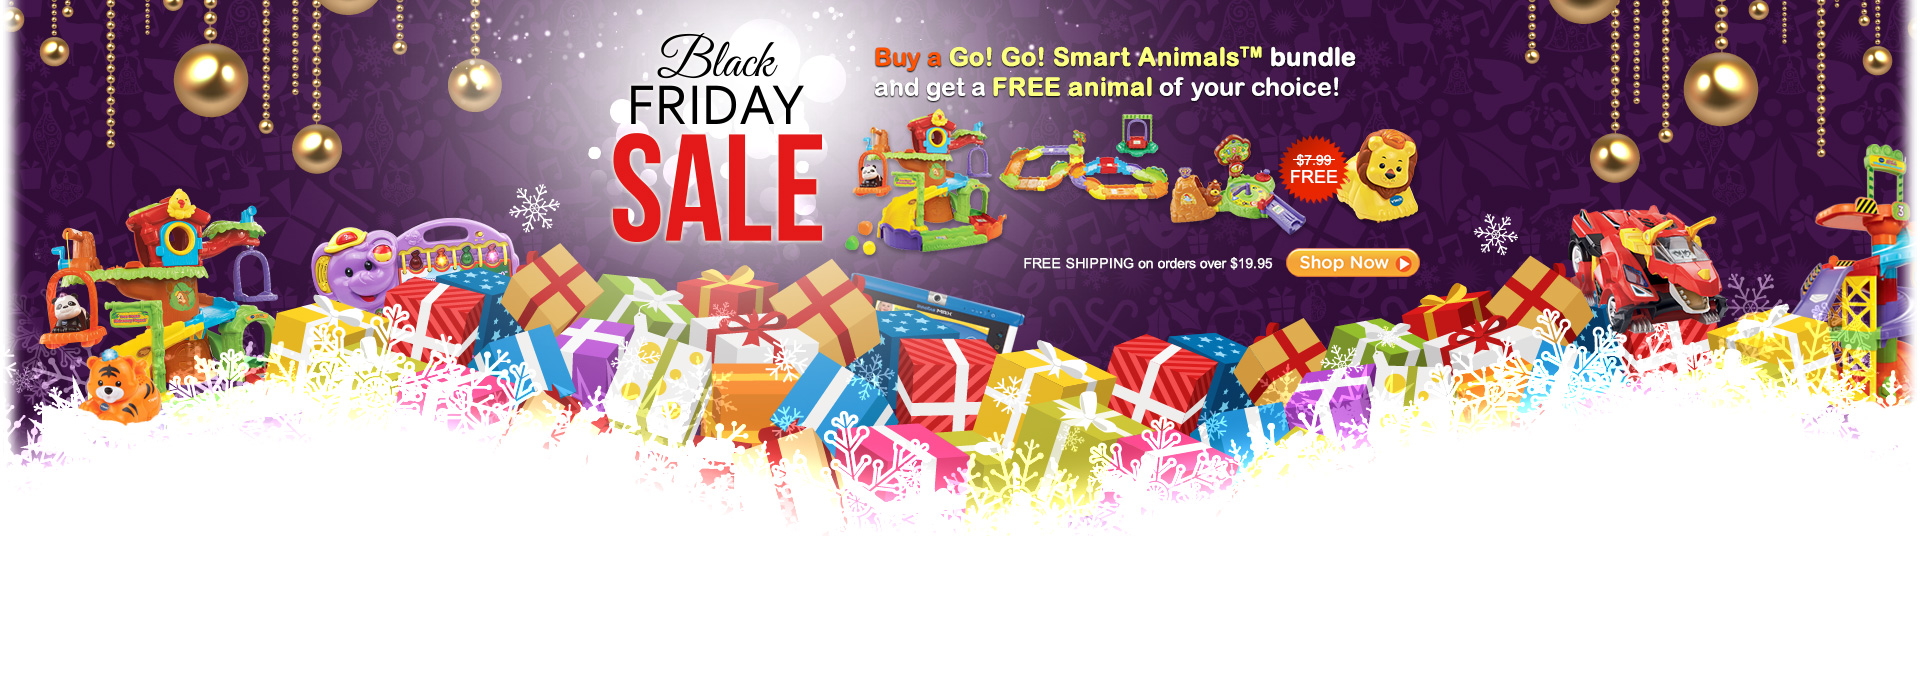 Black Friday Sale - Buy a Go! Go! Smart Animals bundle and get a FREE animal of your choice!